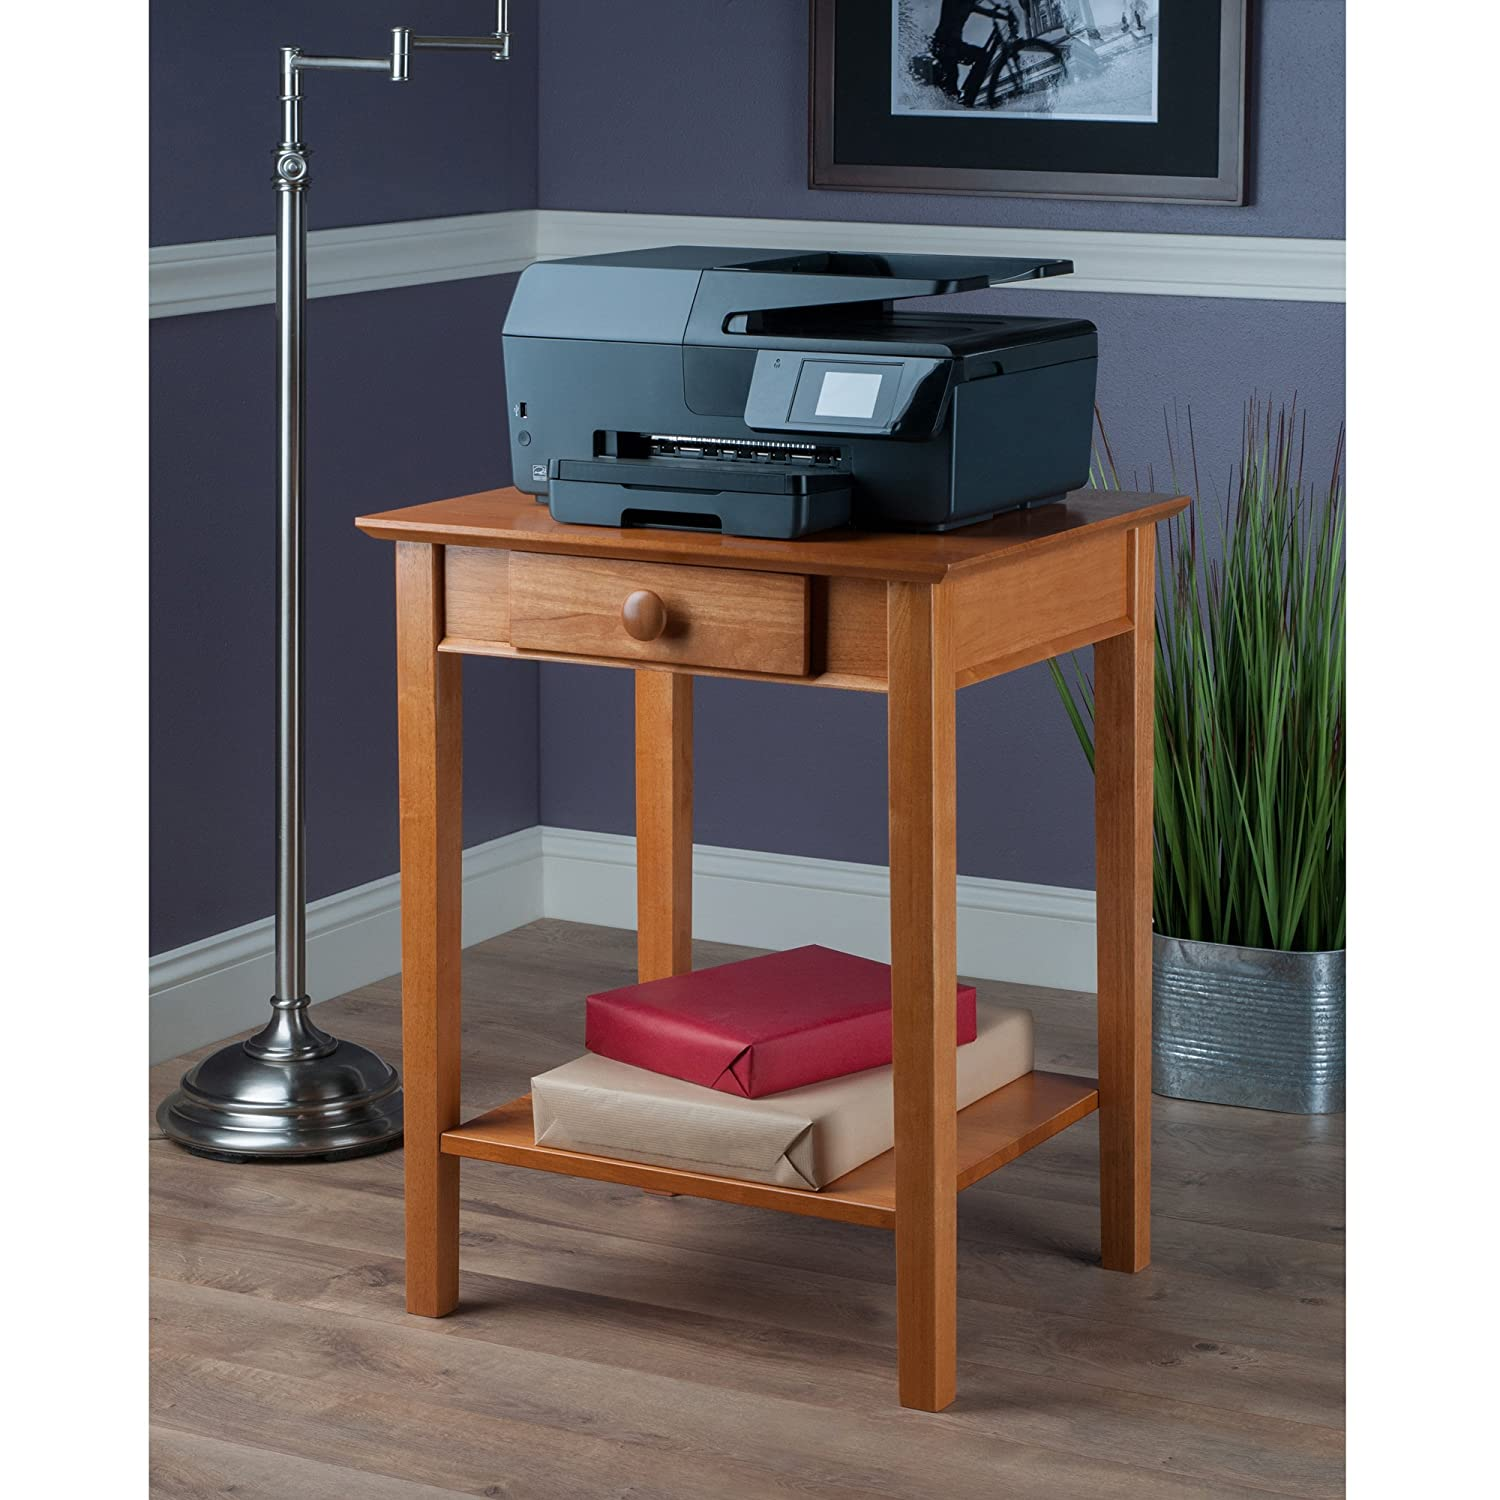 Hidden Printer Cabinet Amazoncom Winsome Wood Printer Stand With Drawer And Shelf